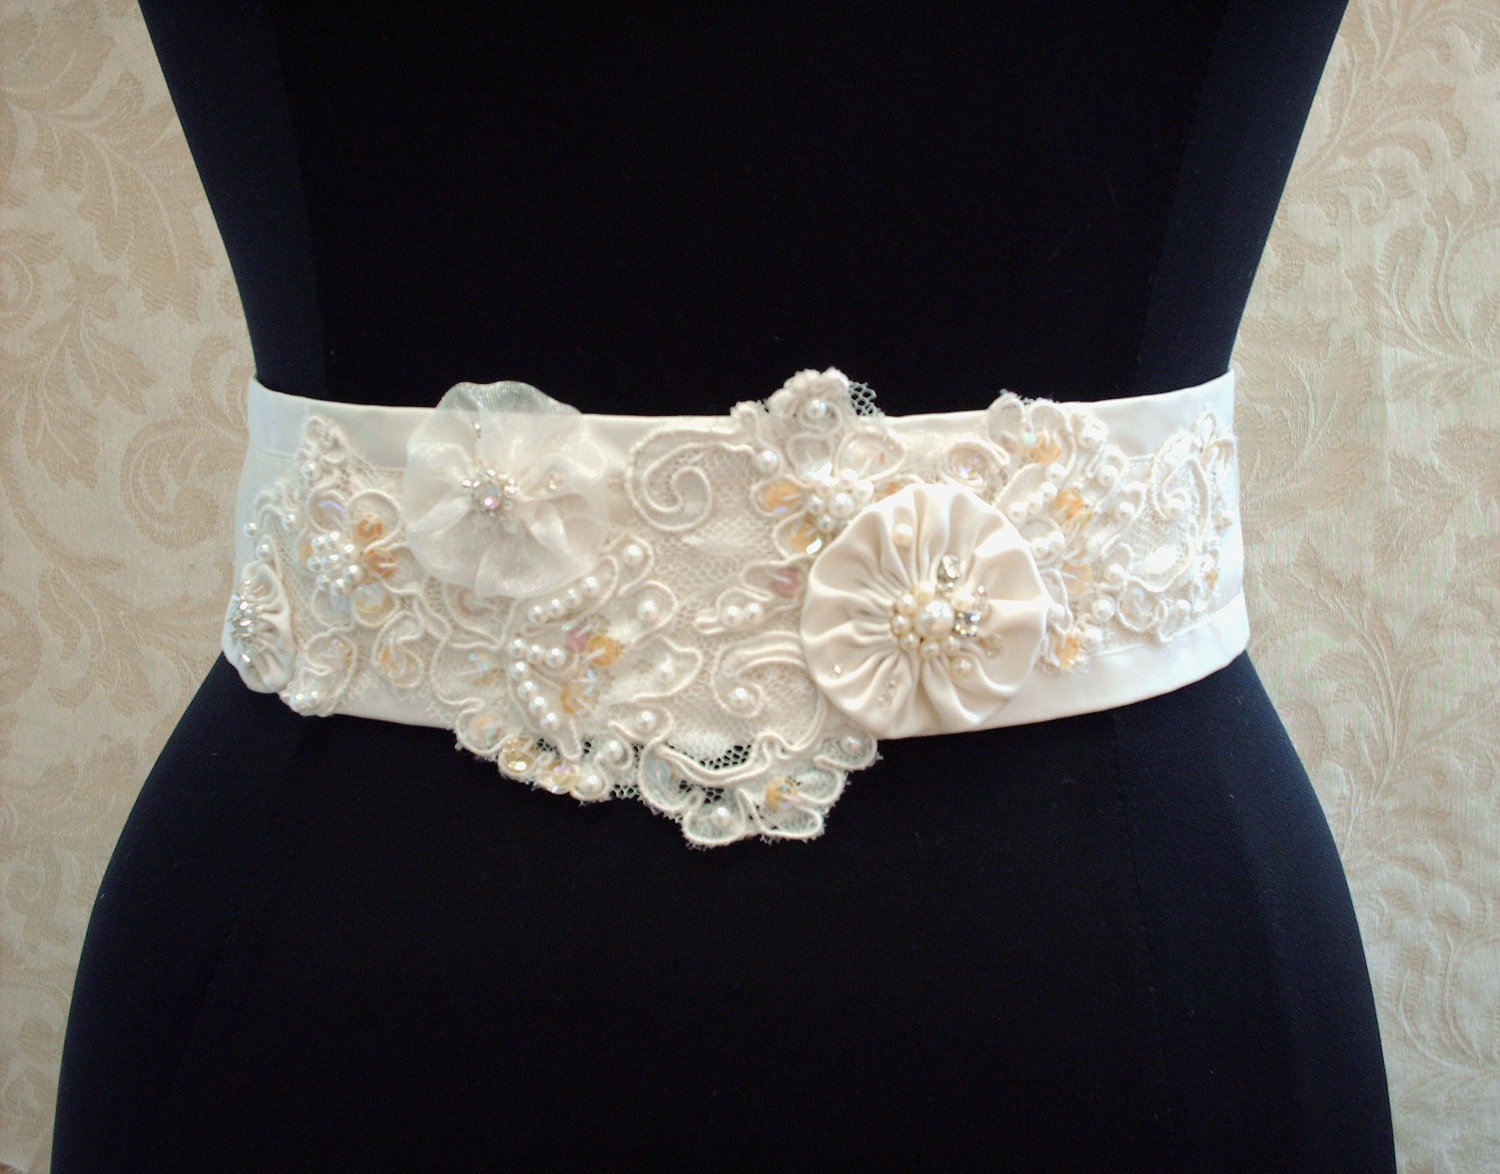 beaded wedding sash belt slash vintage ivory lace satin organza illusion tulle bridal sash wedding sash Beaded Wedding Sash Belt Vintage Ivory Lace Satin Organza Illusion Tulle Bridal Sash